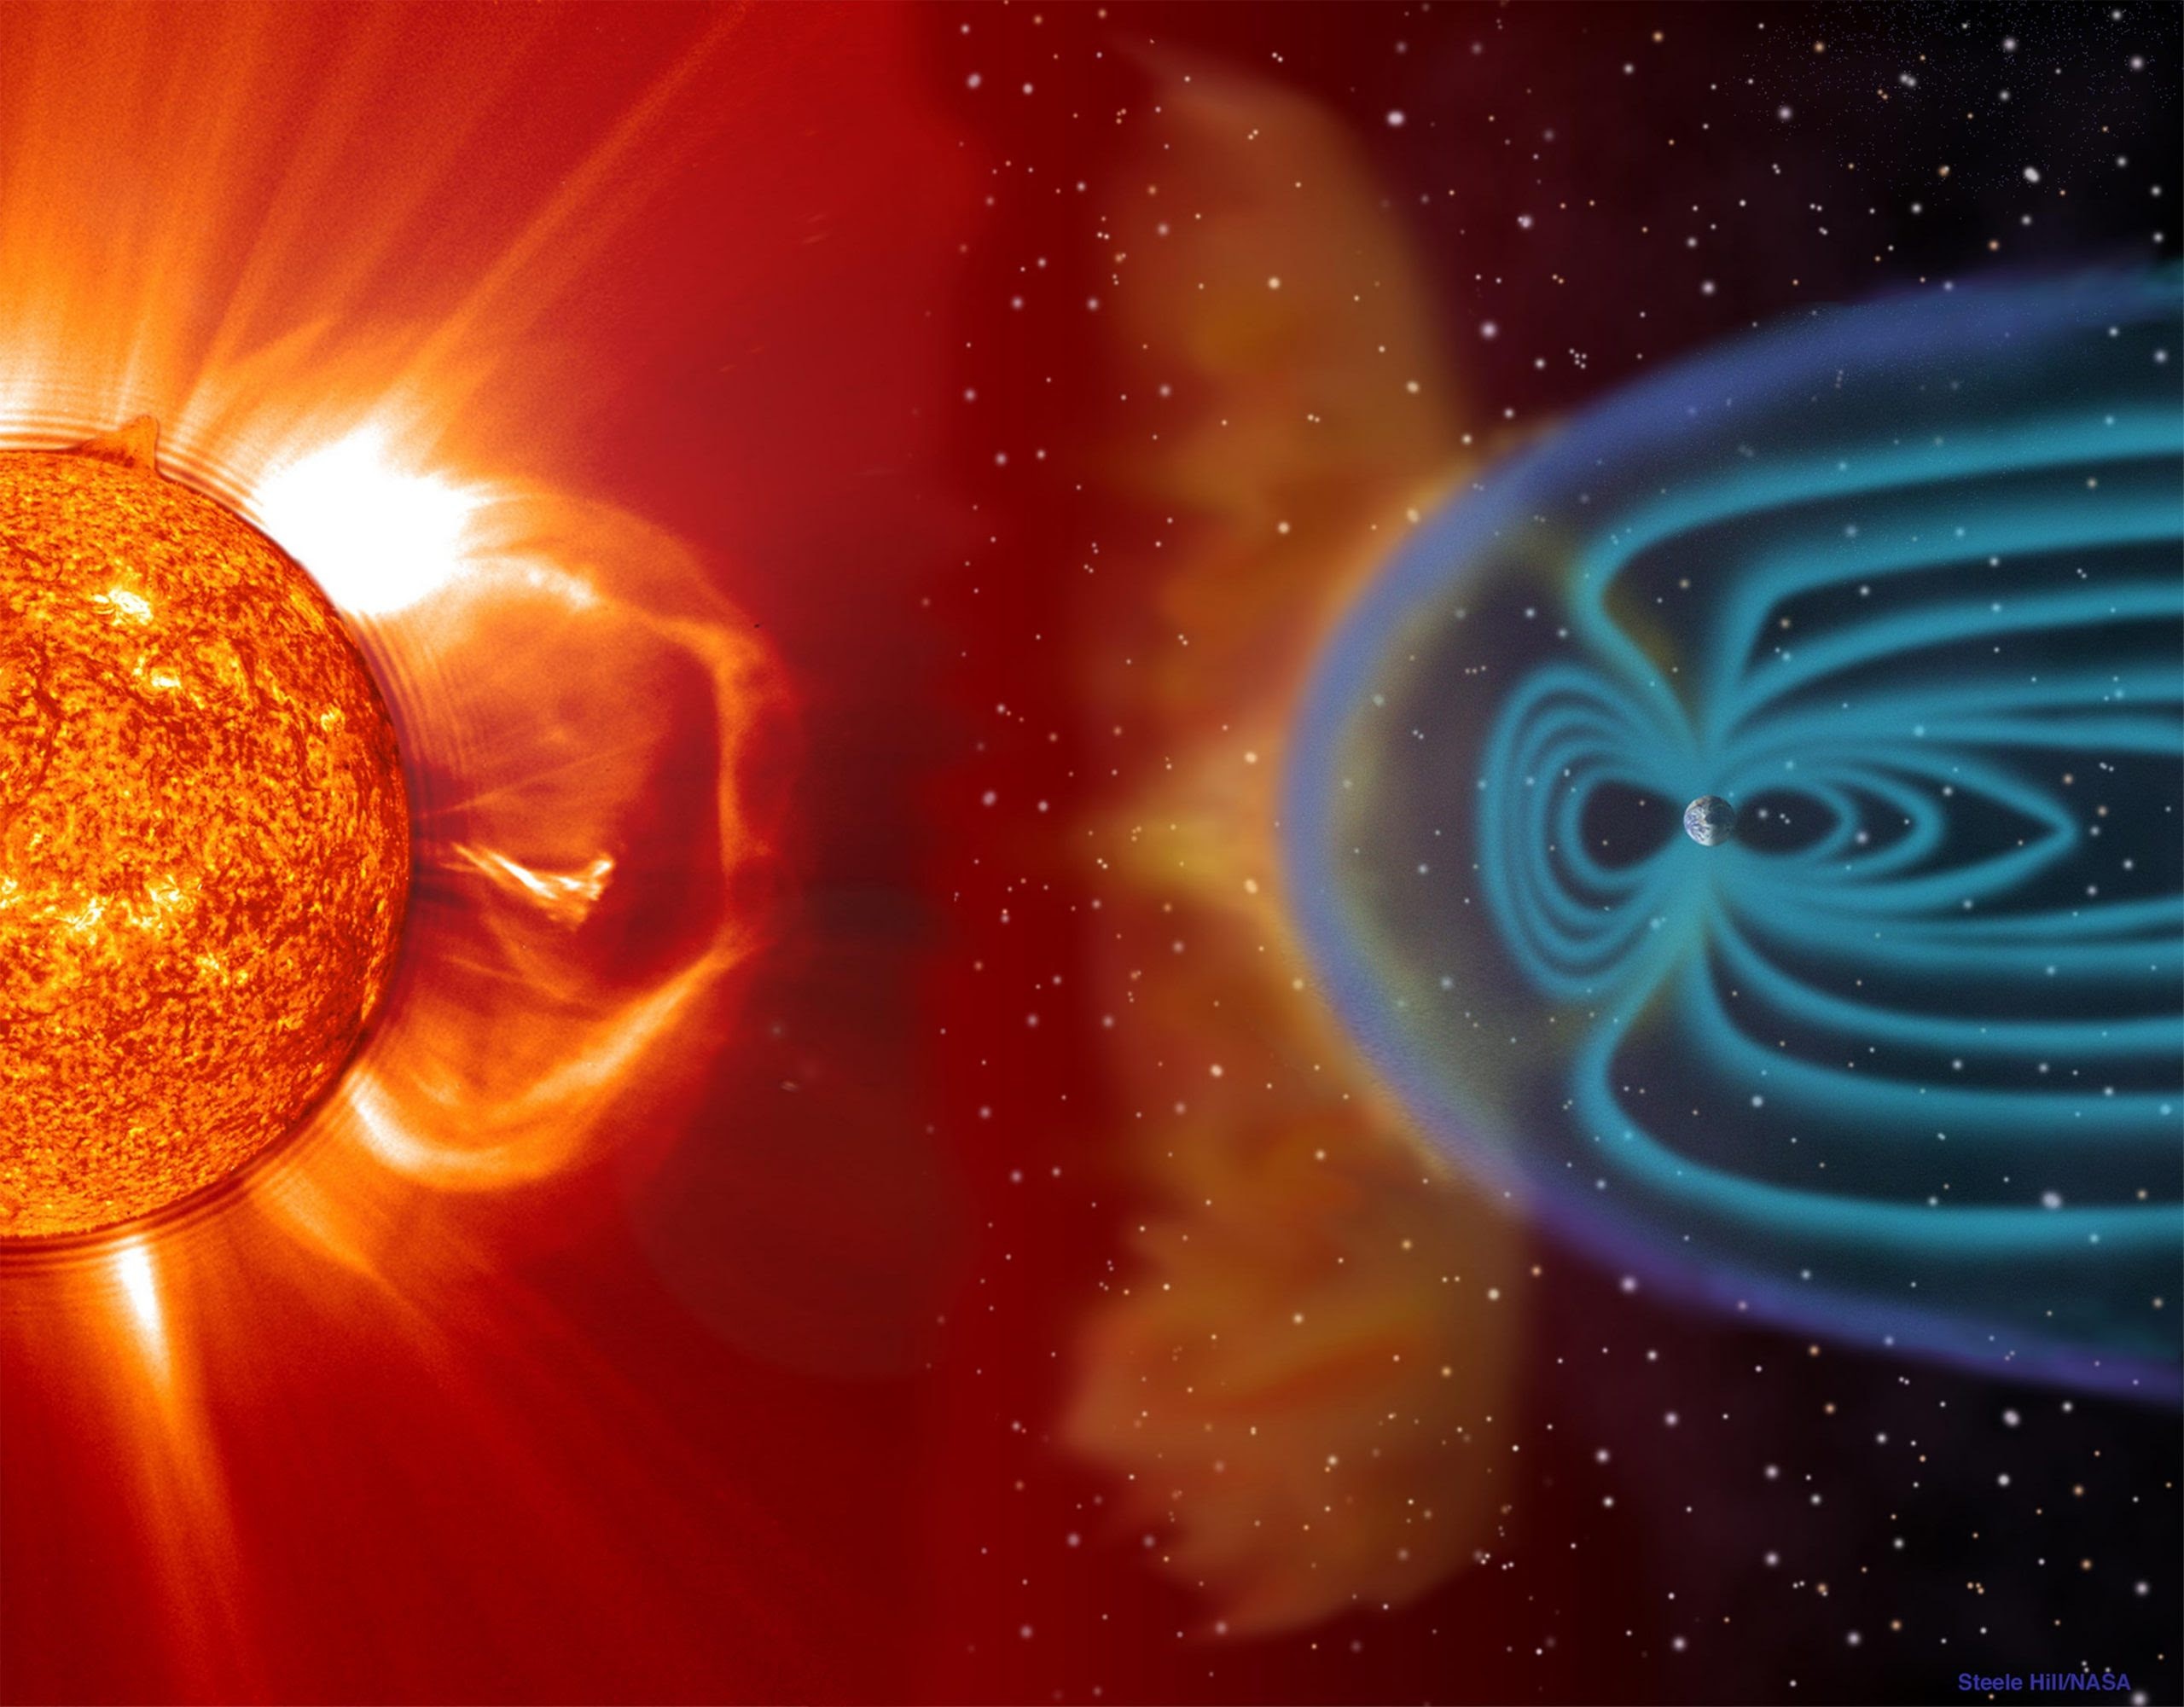 Planetary Shields Will Buckle Under Furious Stellar Winds From Their Dying Stars – Nearly Impossible for Life To Survive